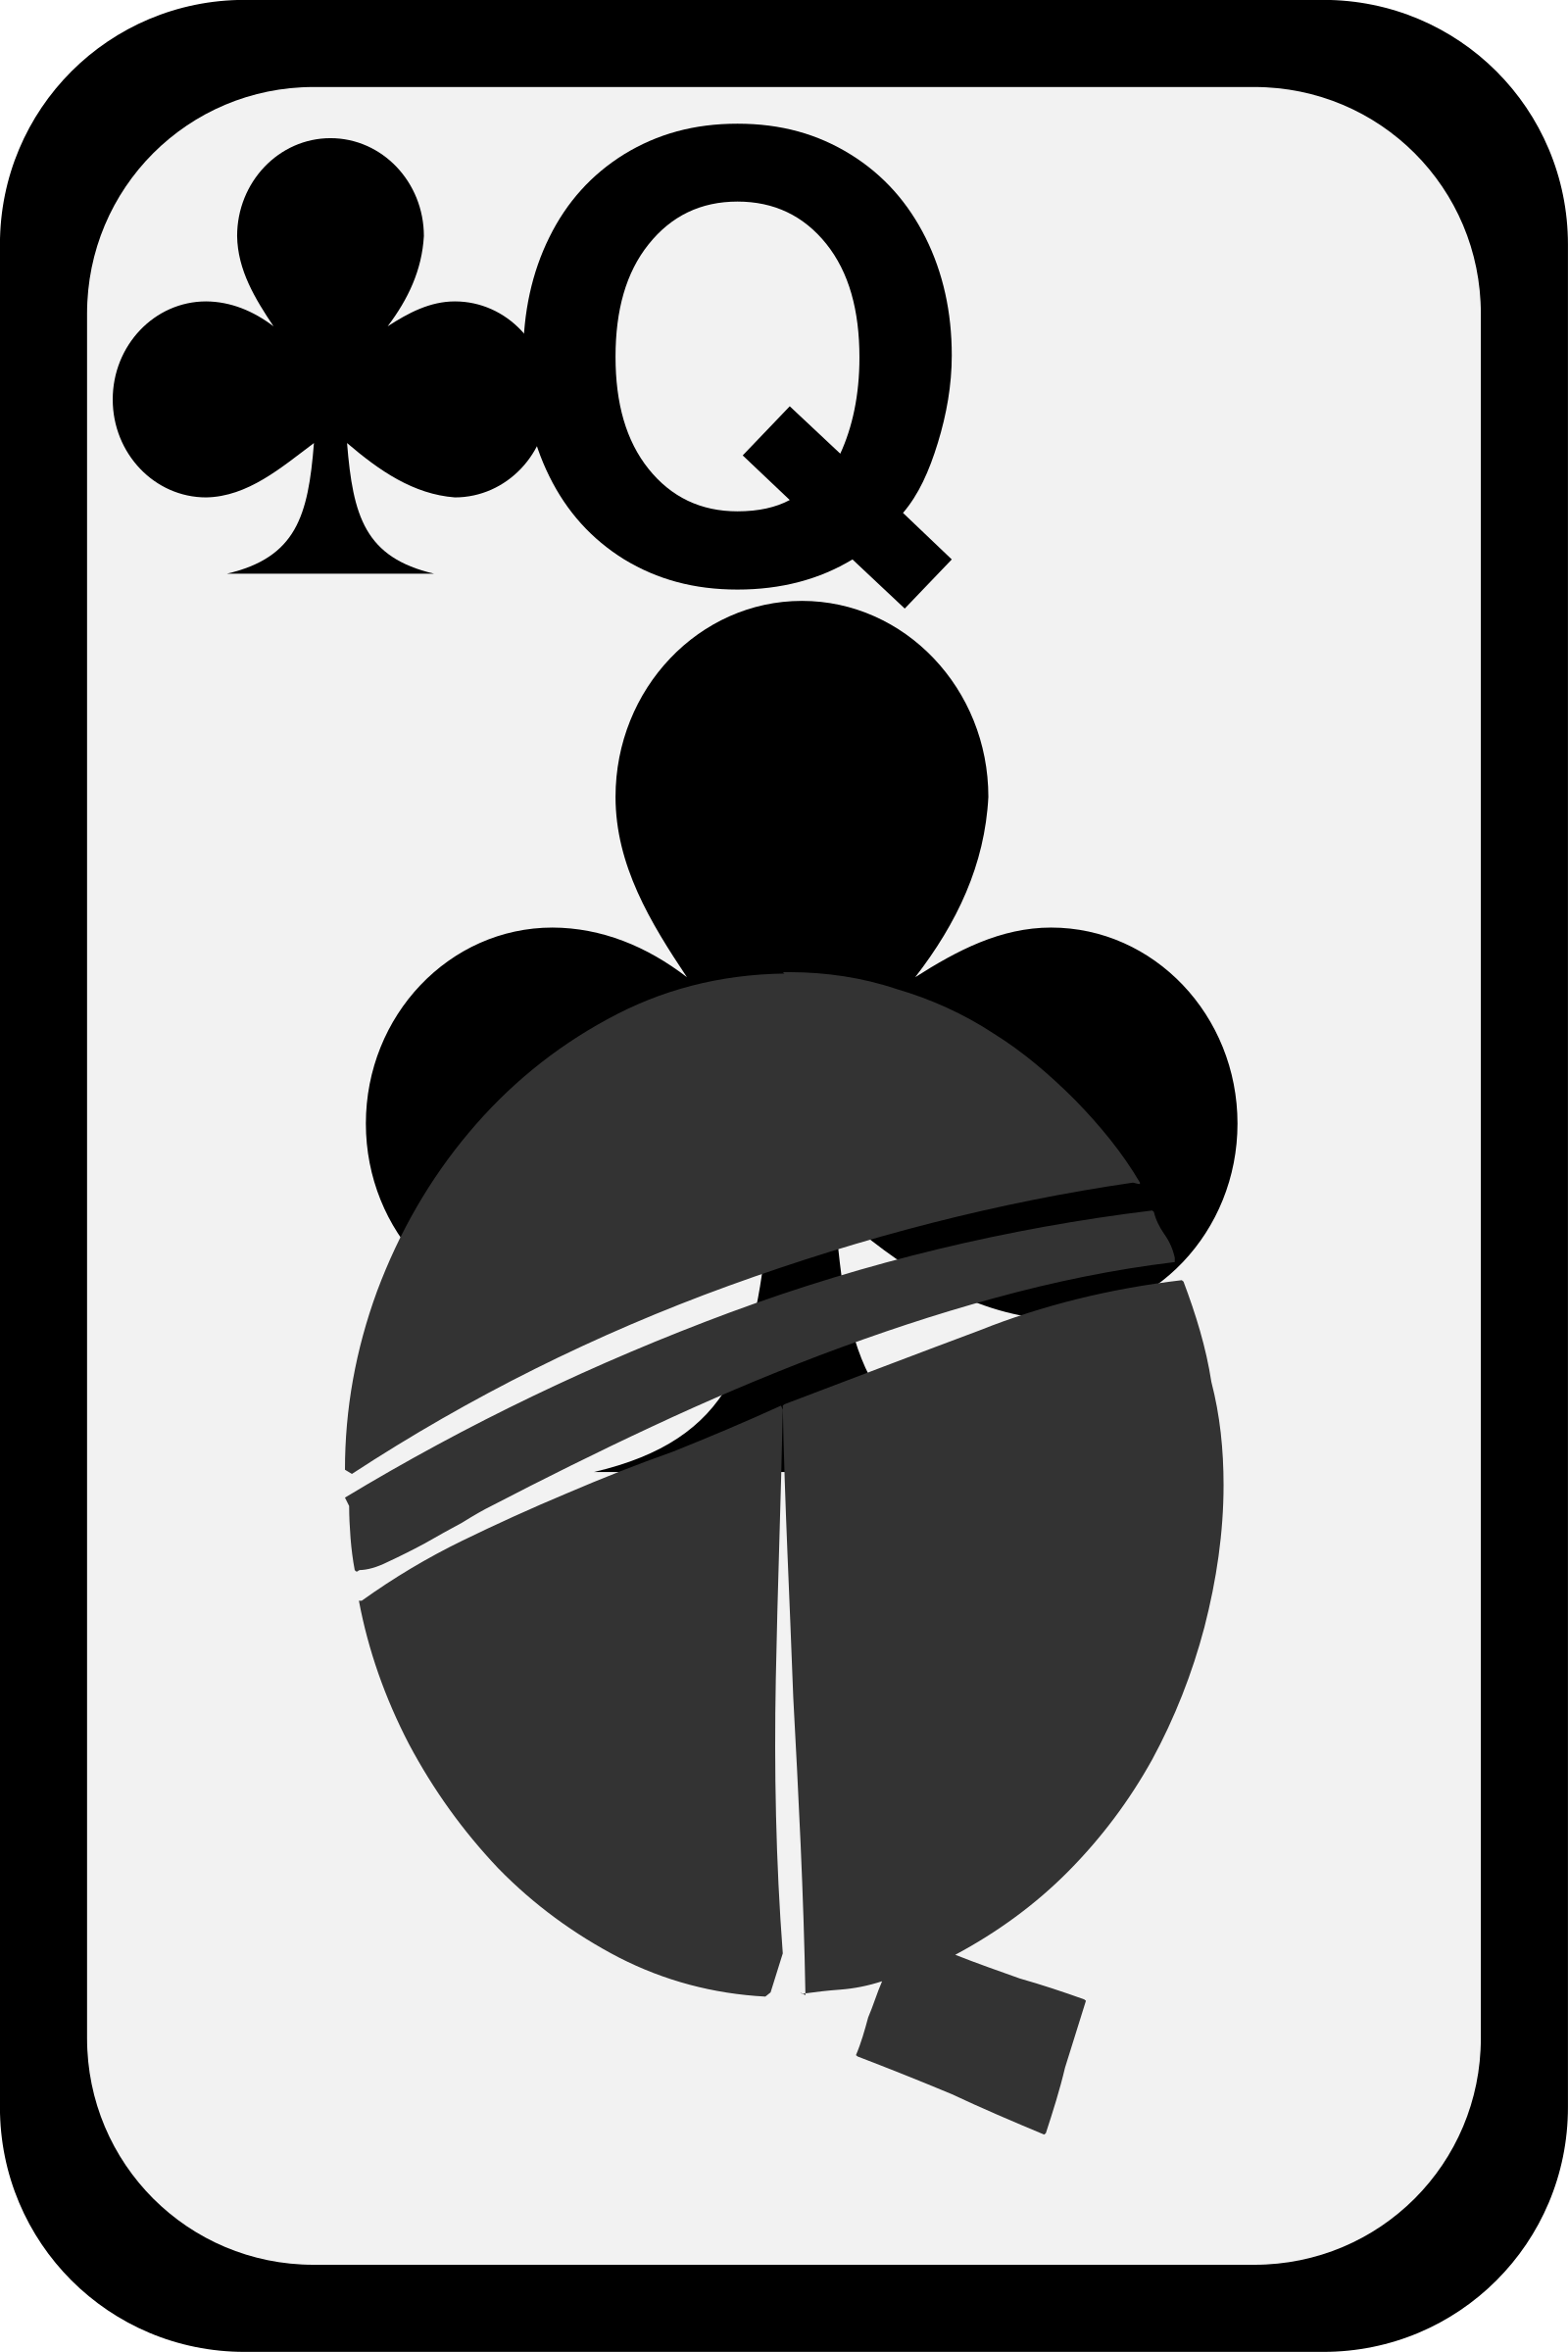 Queen of Clubs by momoko